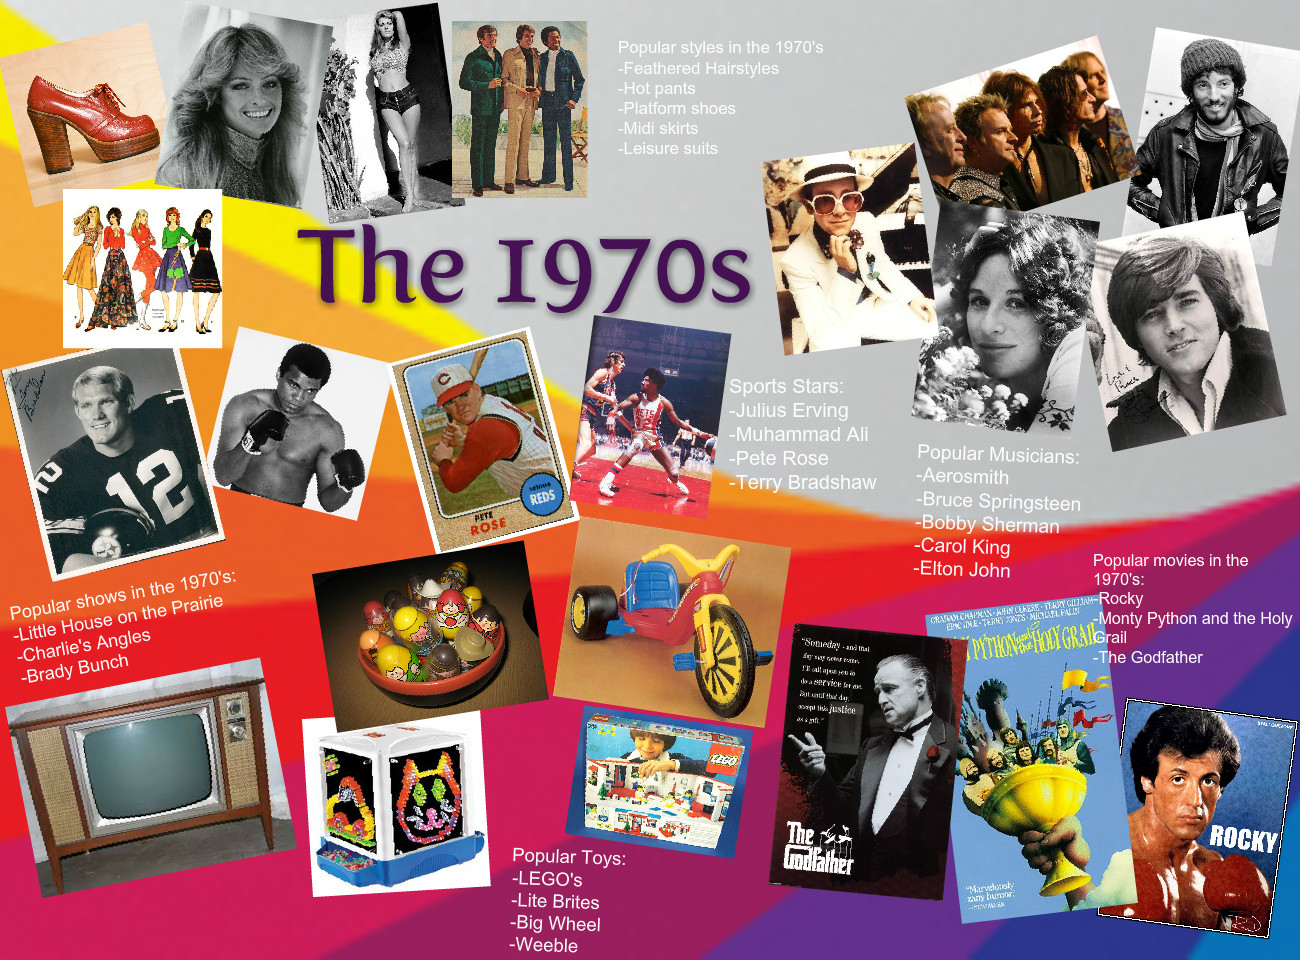 The 1970's